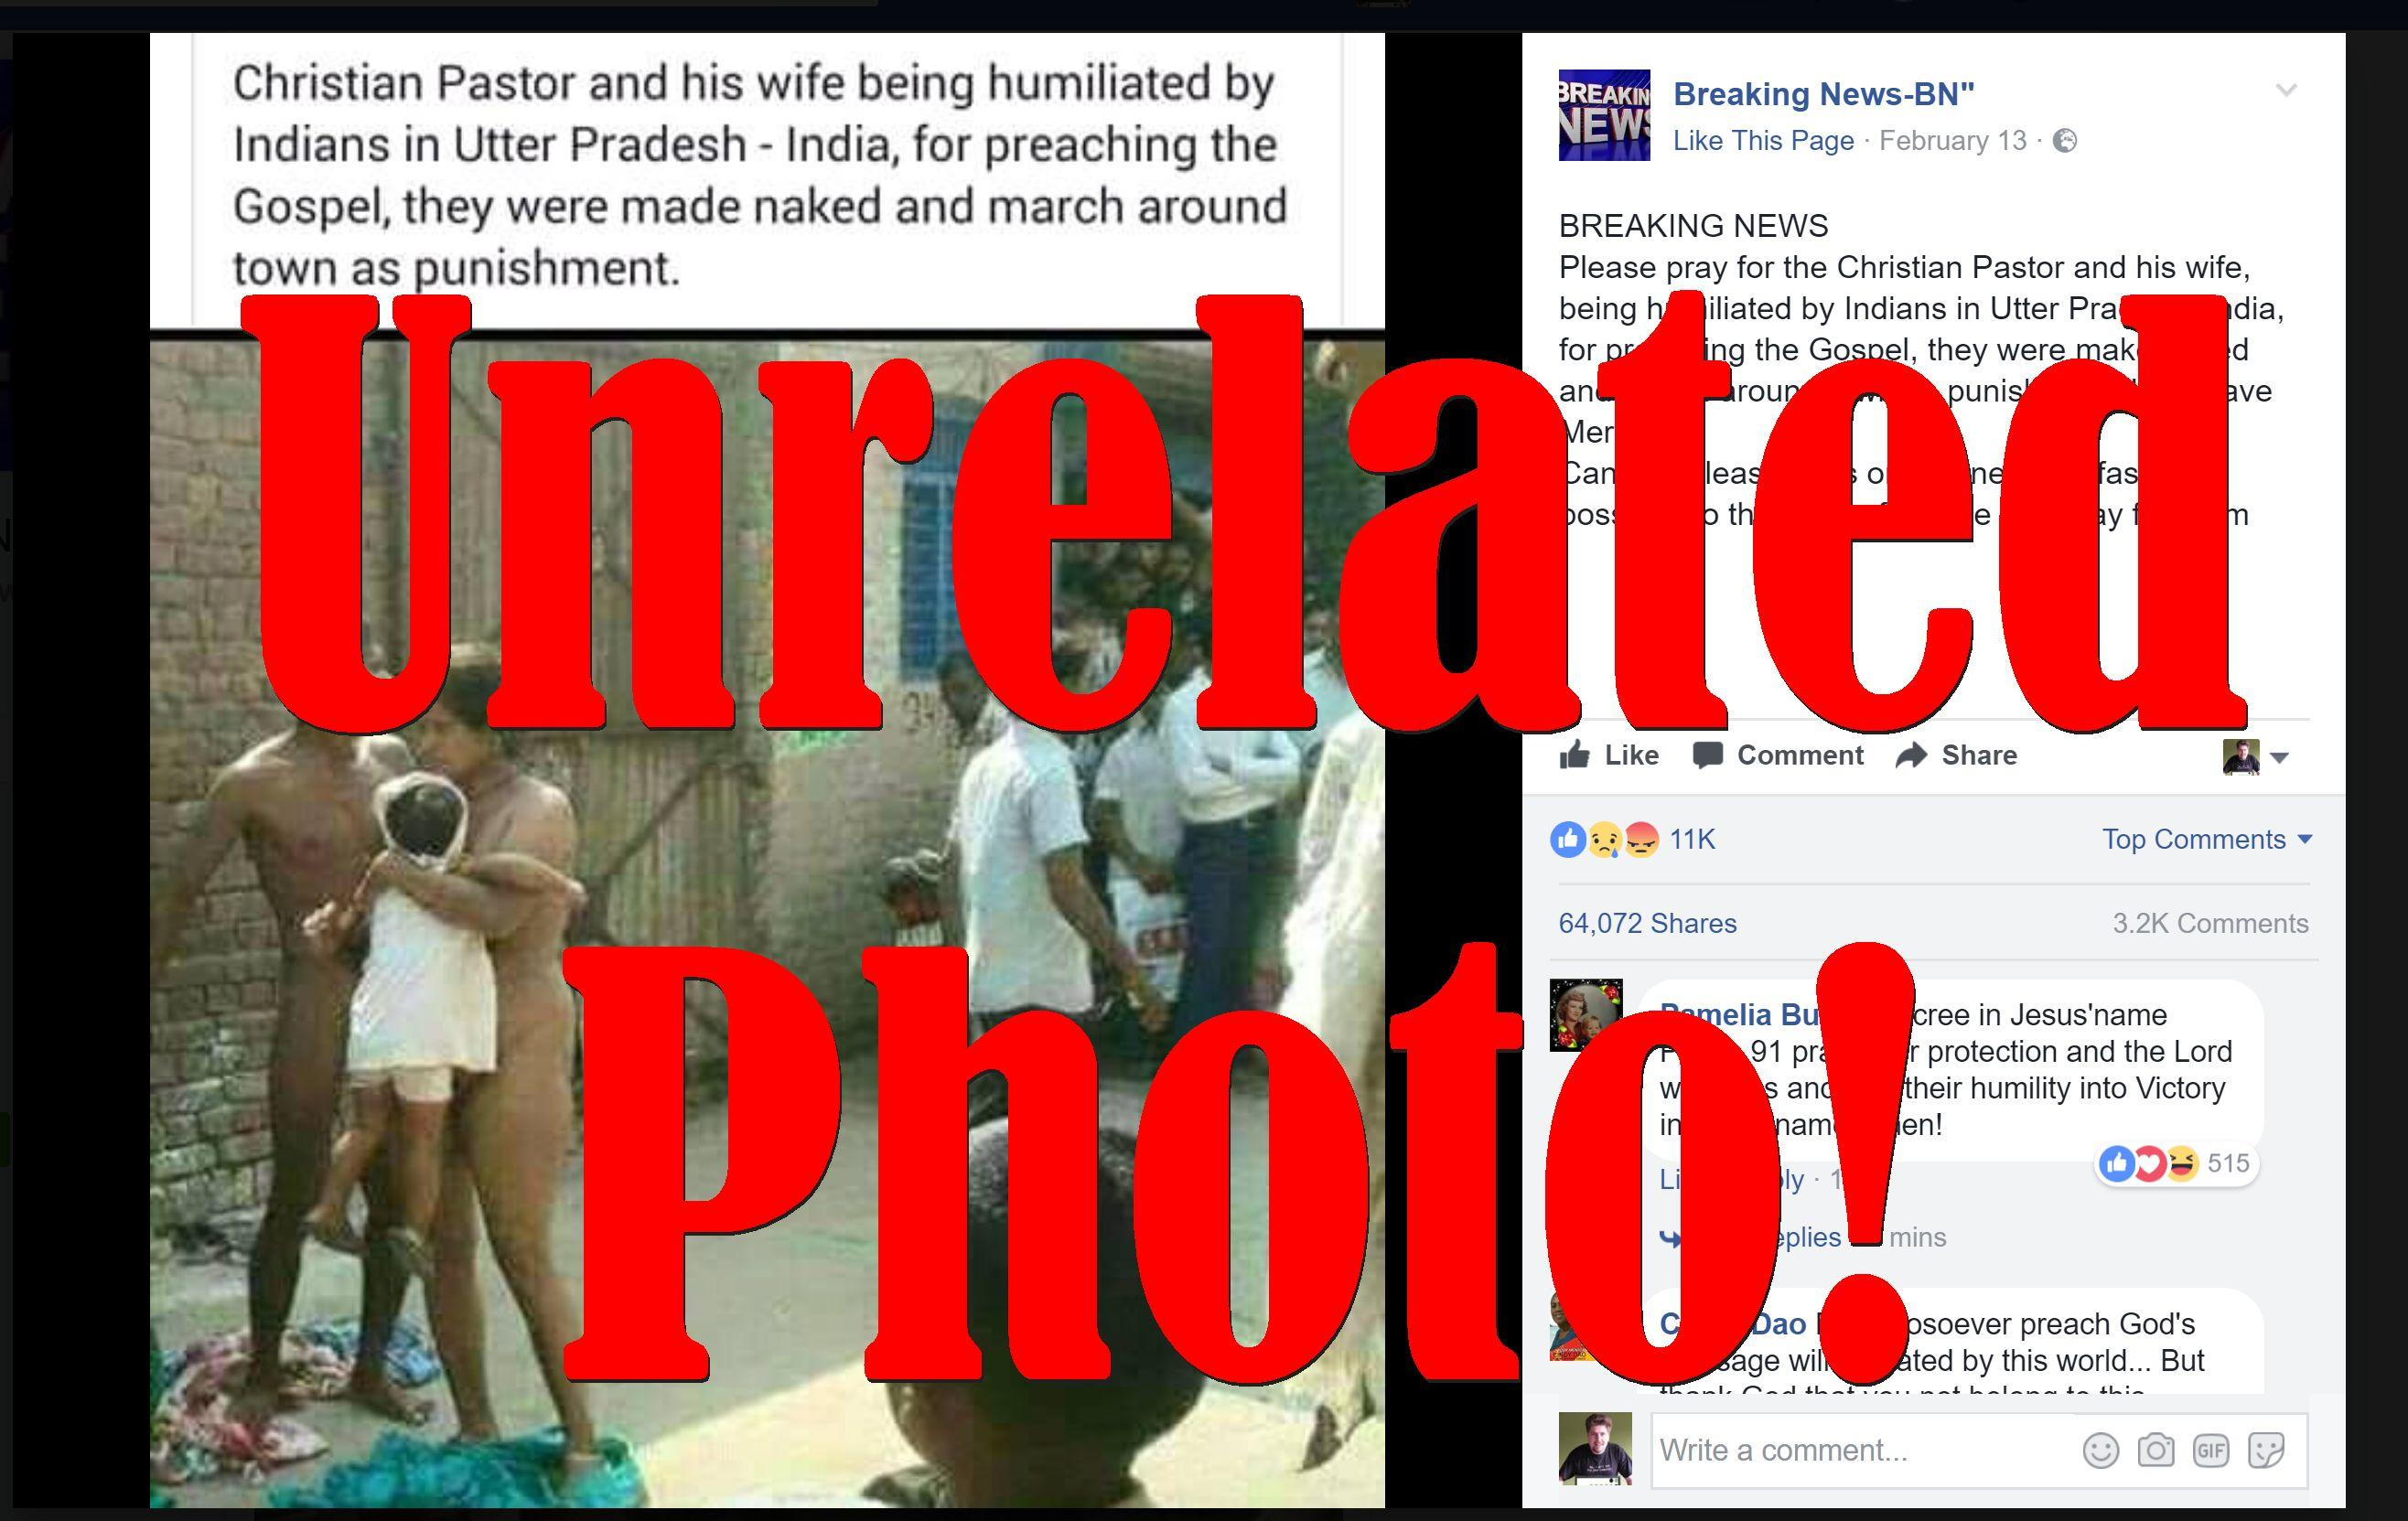 Fake News: Christian Pastor And His Wife NOT Stripped And Humiliated By Indians In Uttar Pradesh